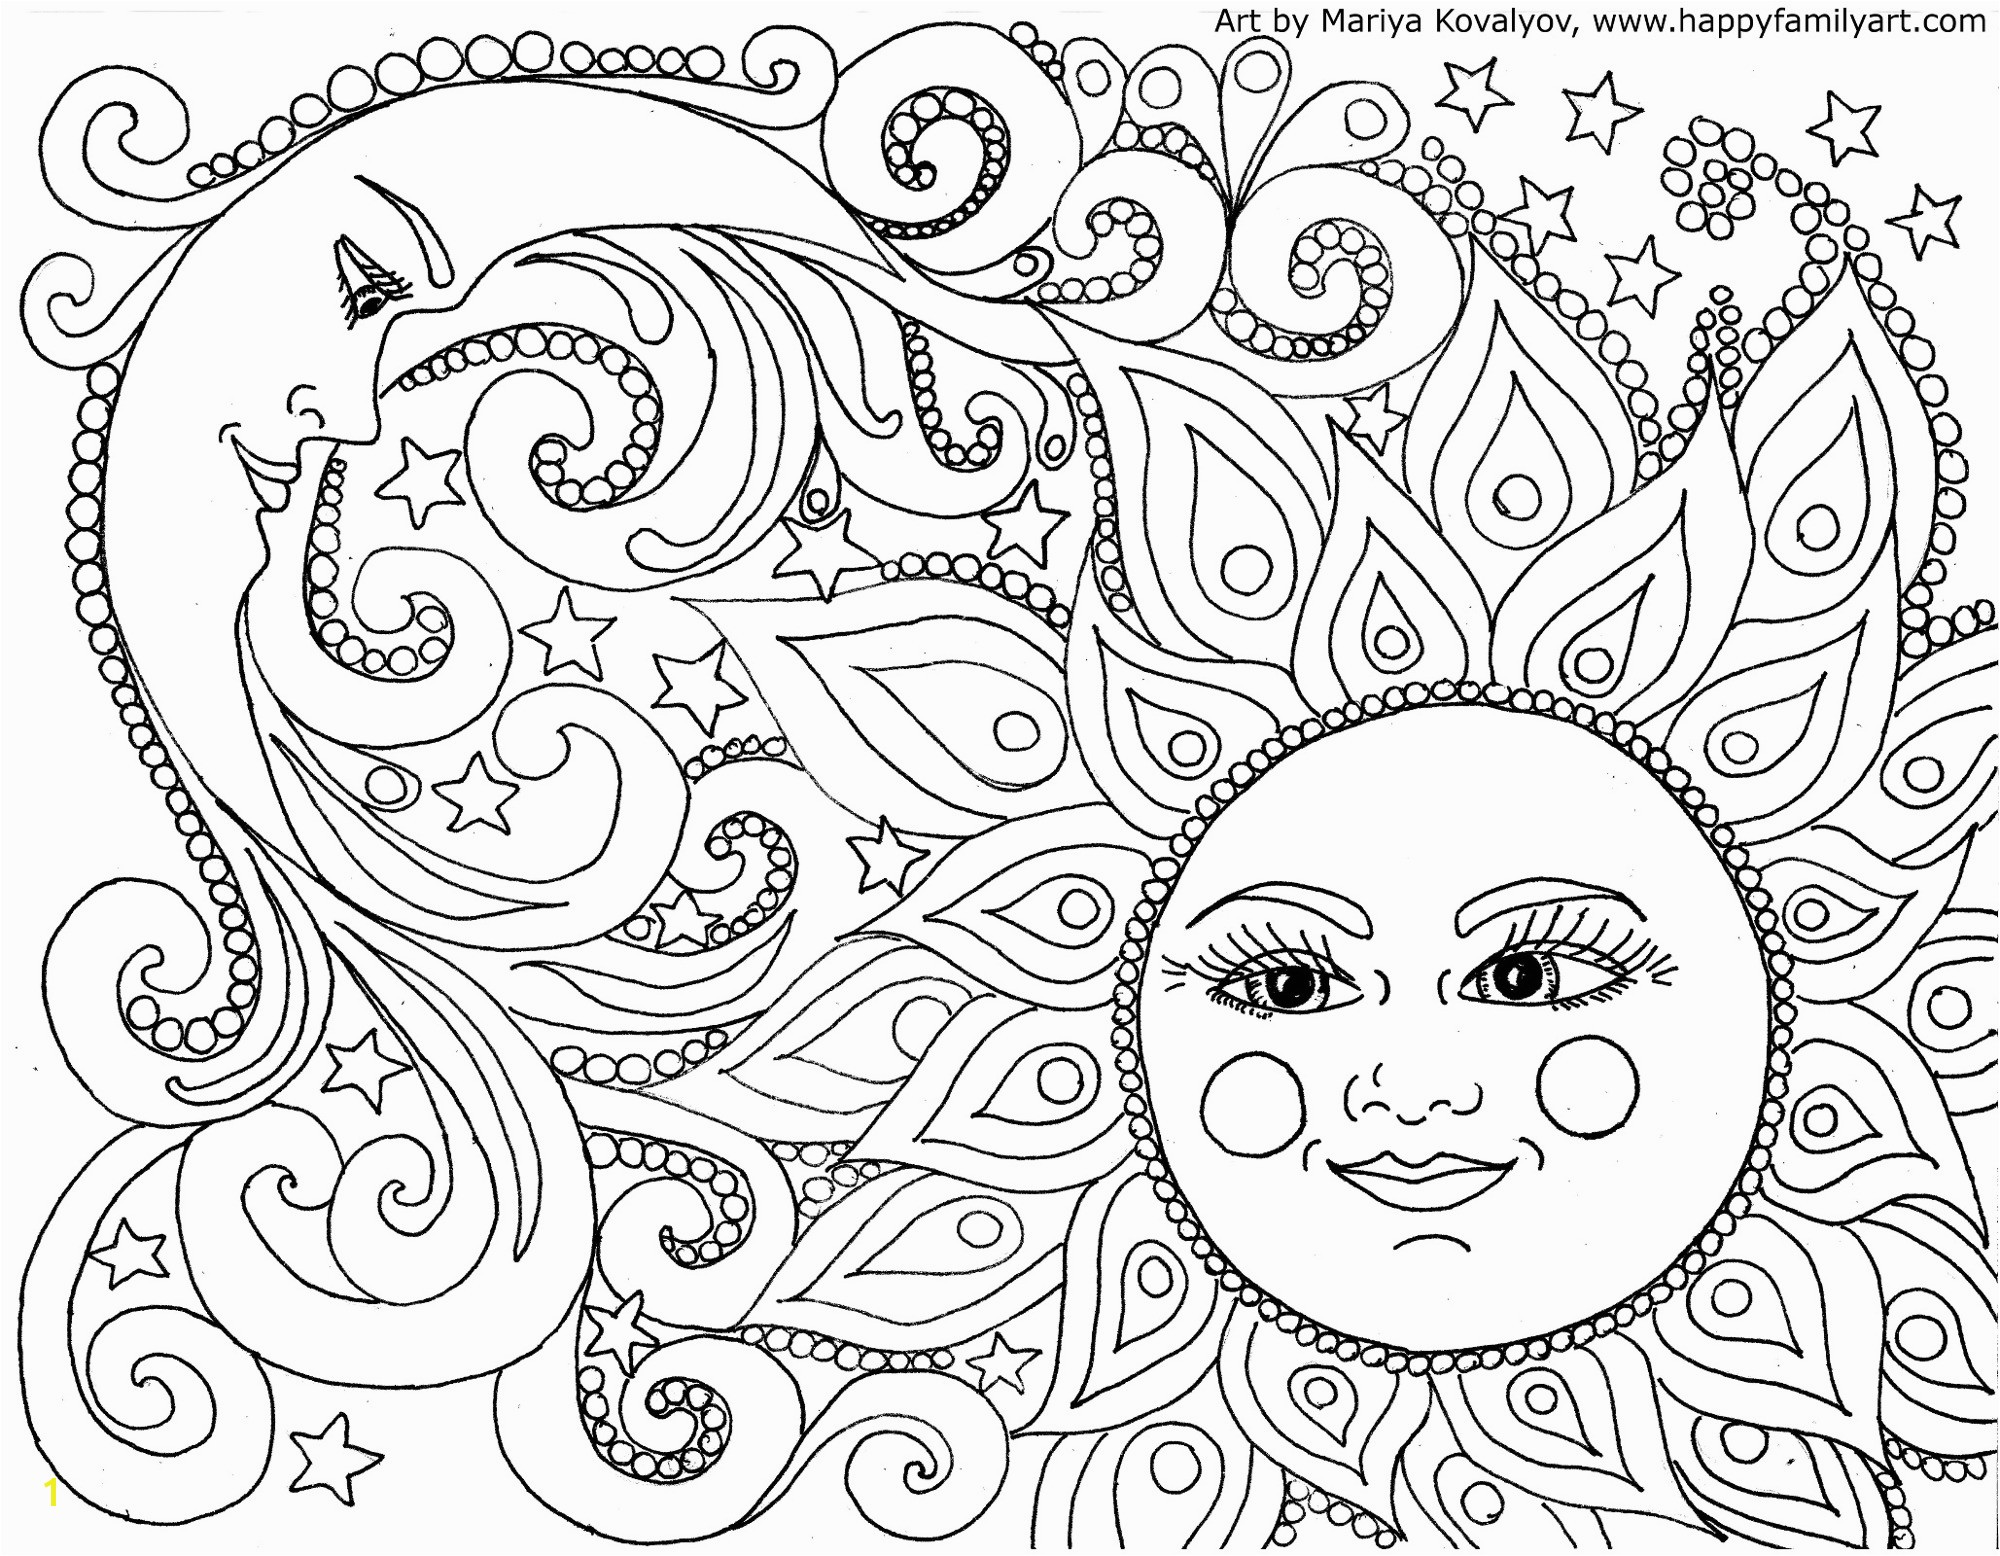 Best Coloring Pages for Adults Coloring Pages Bino 9terrains